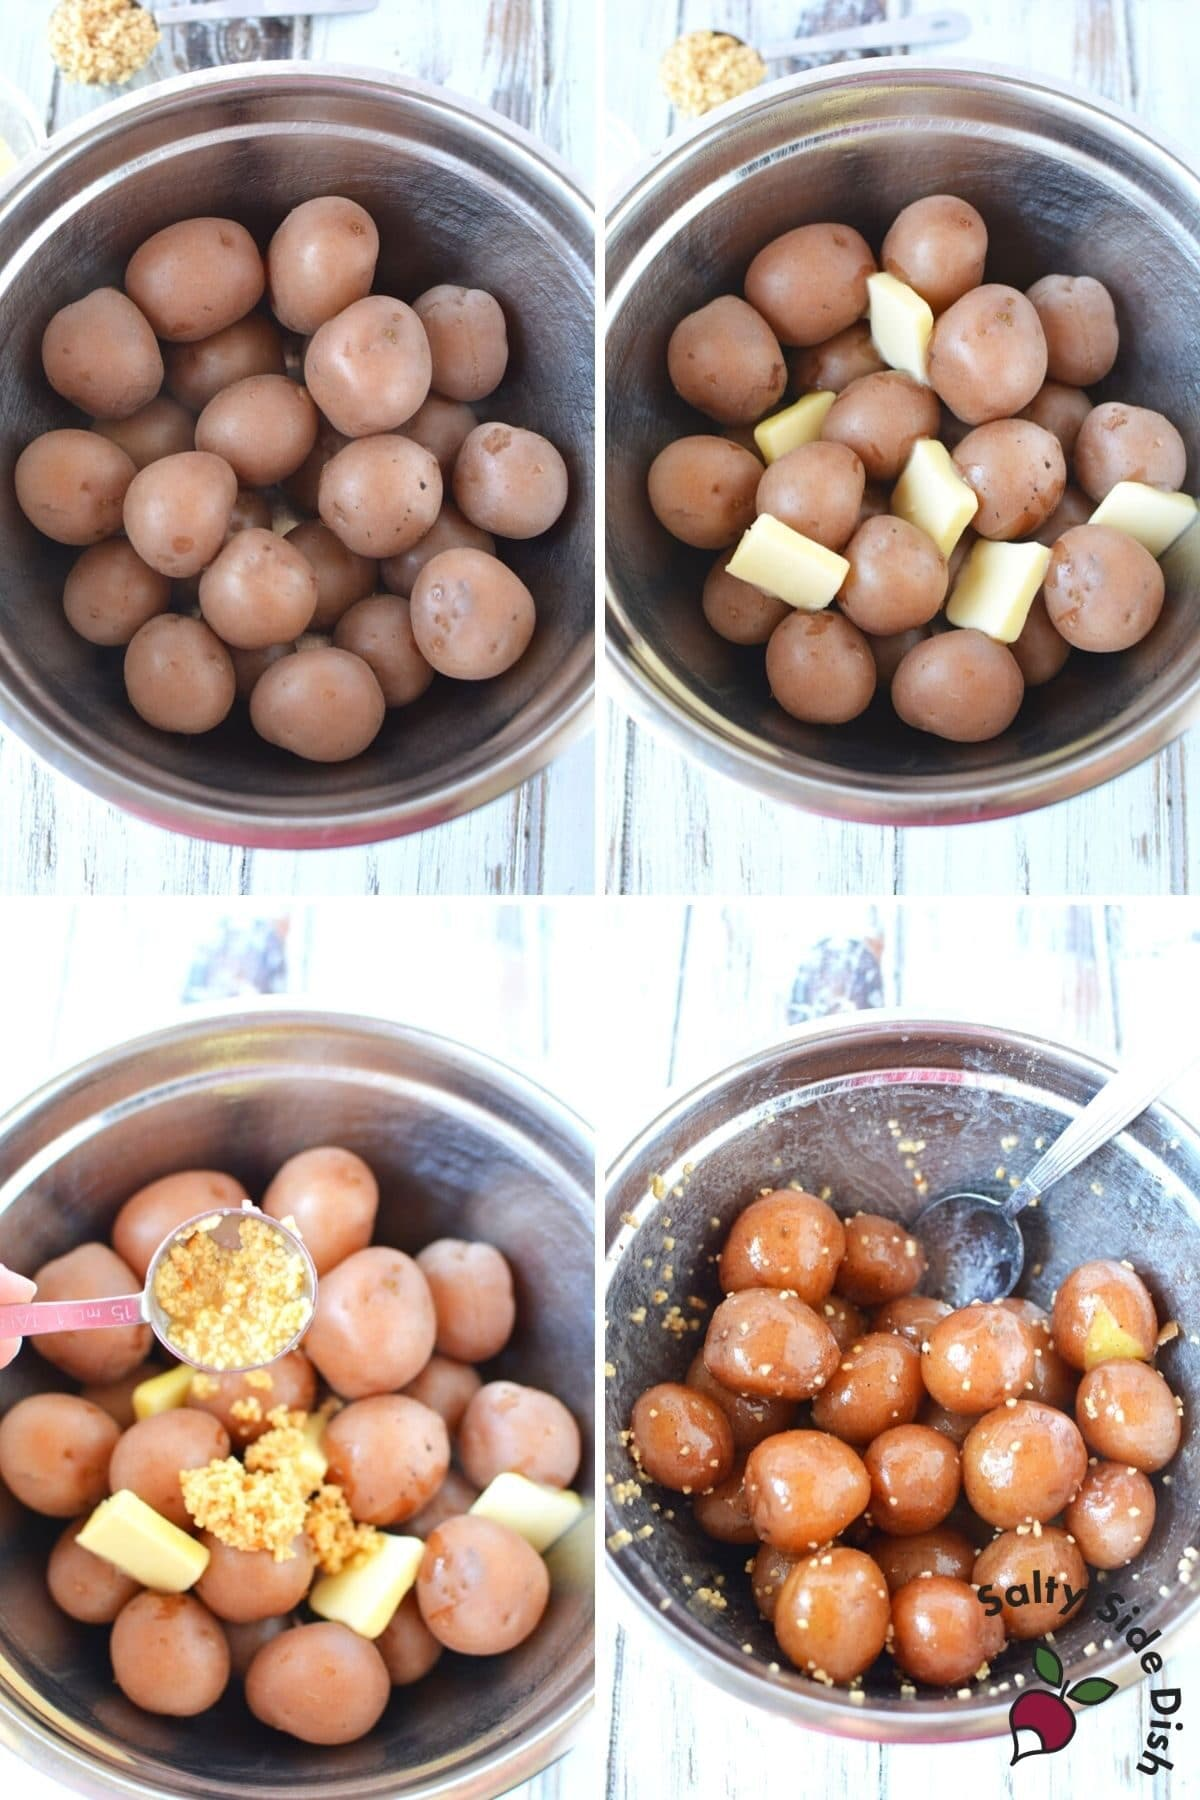 boiled red potatoes in a mixing bowl with butter and garlic